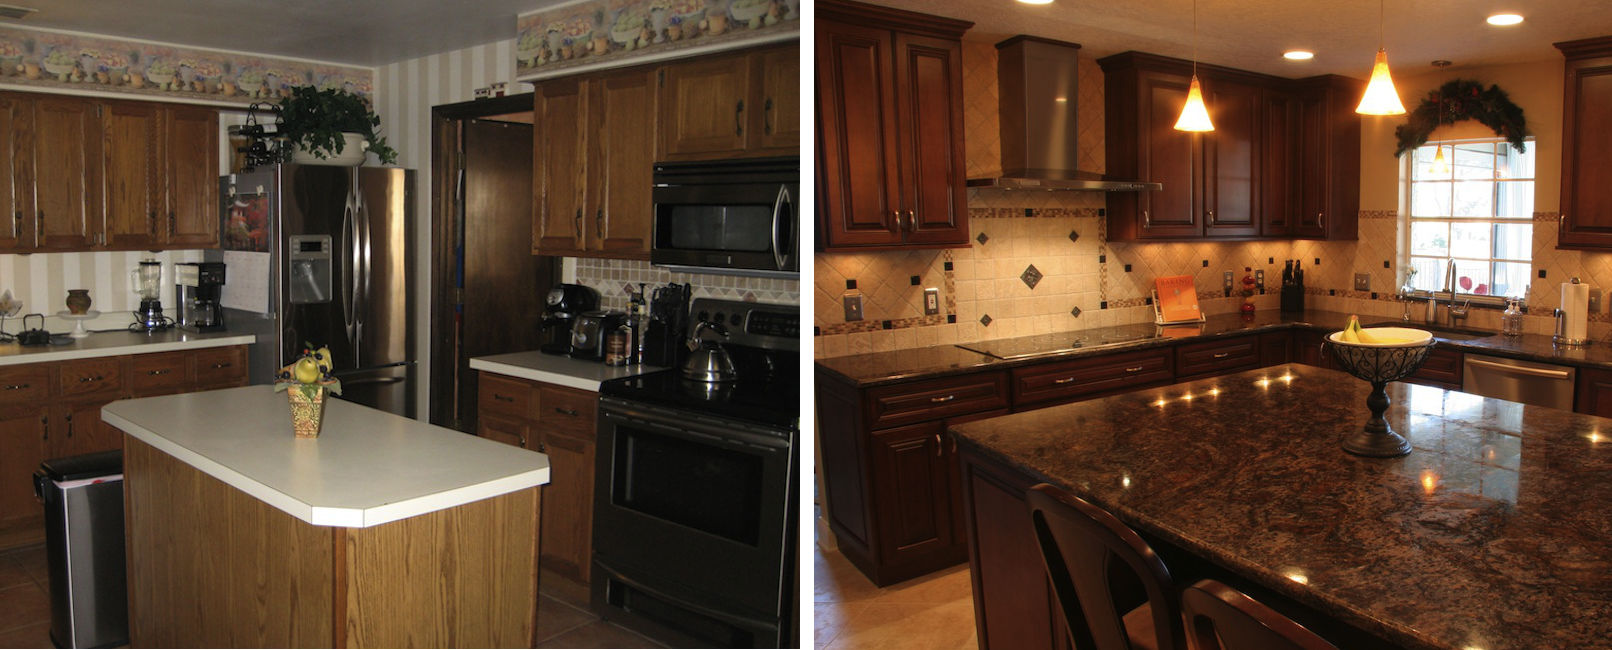 Before And After Before After Kitchen. Kitchen Remodeling Before And